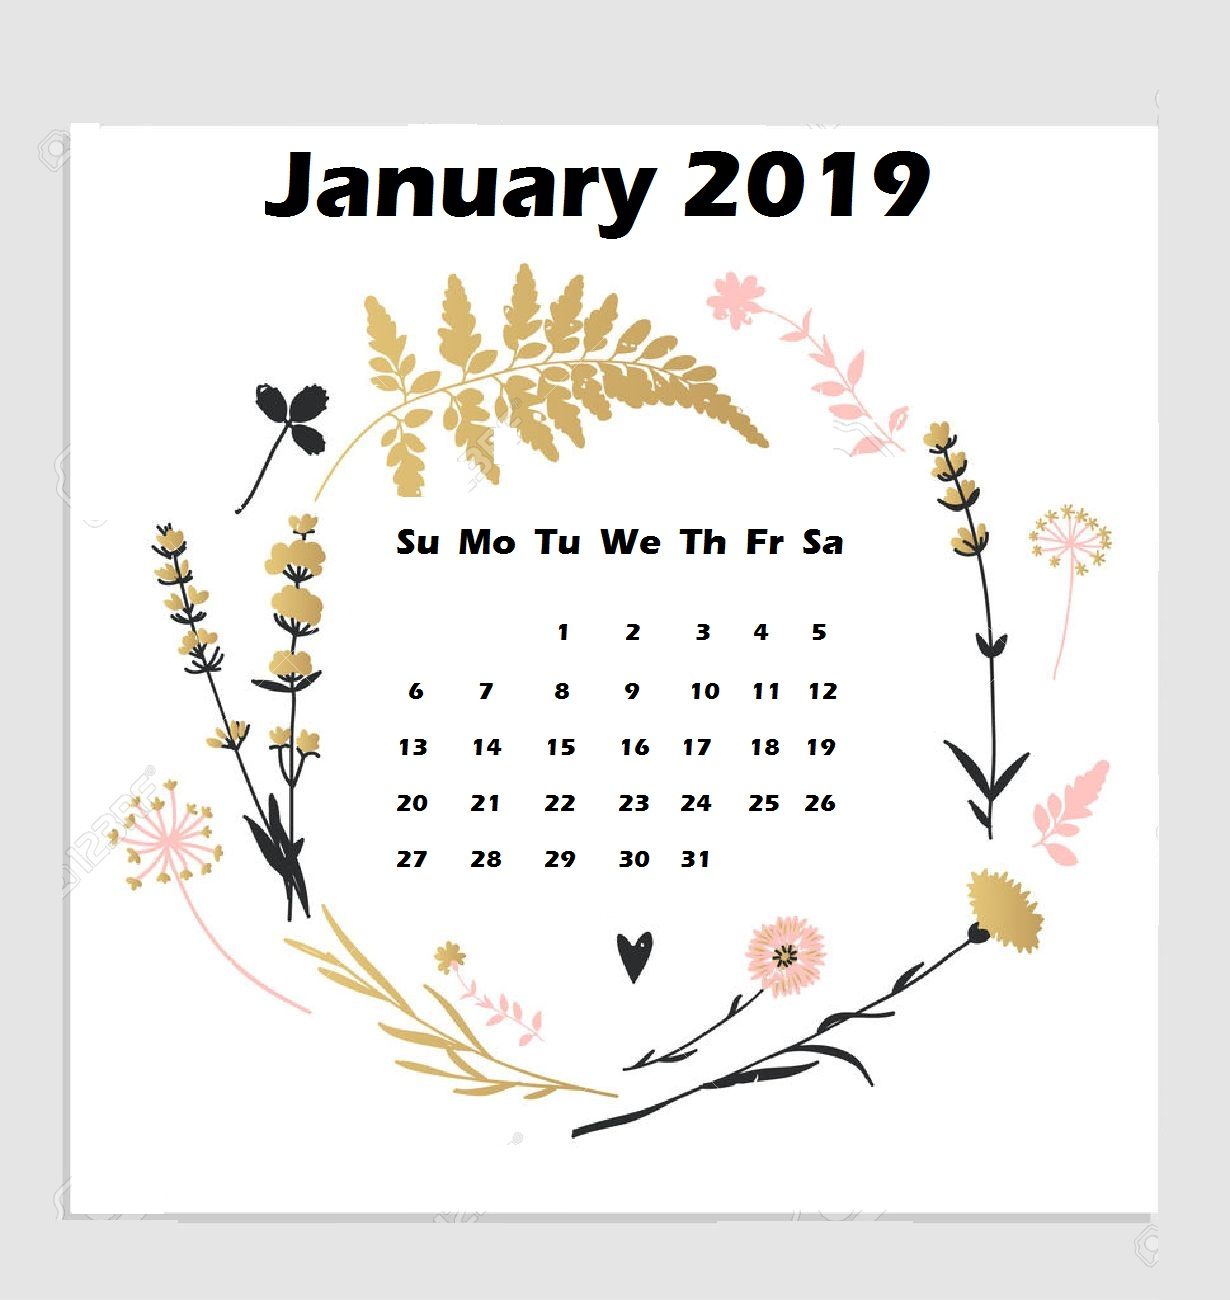 January 2019 iPhone Wallpaper Calendar